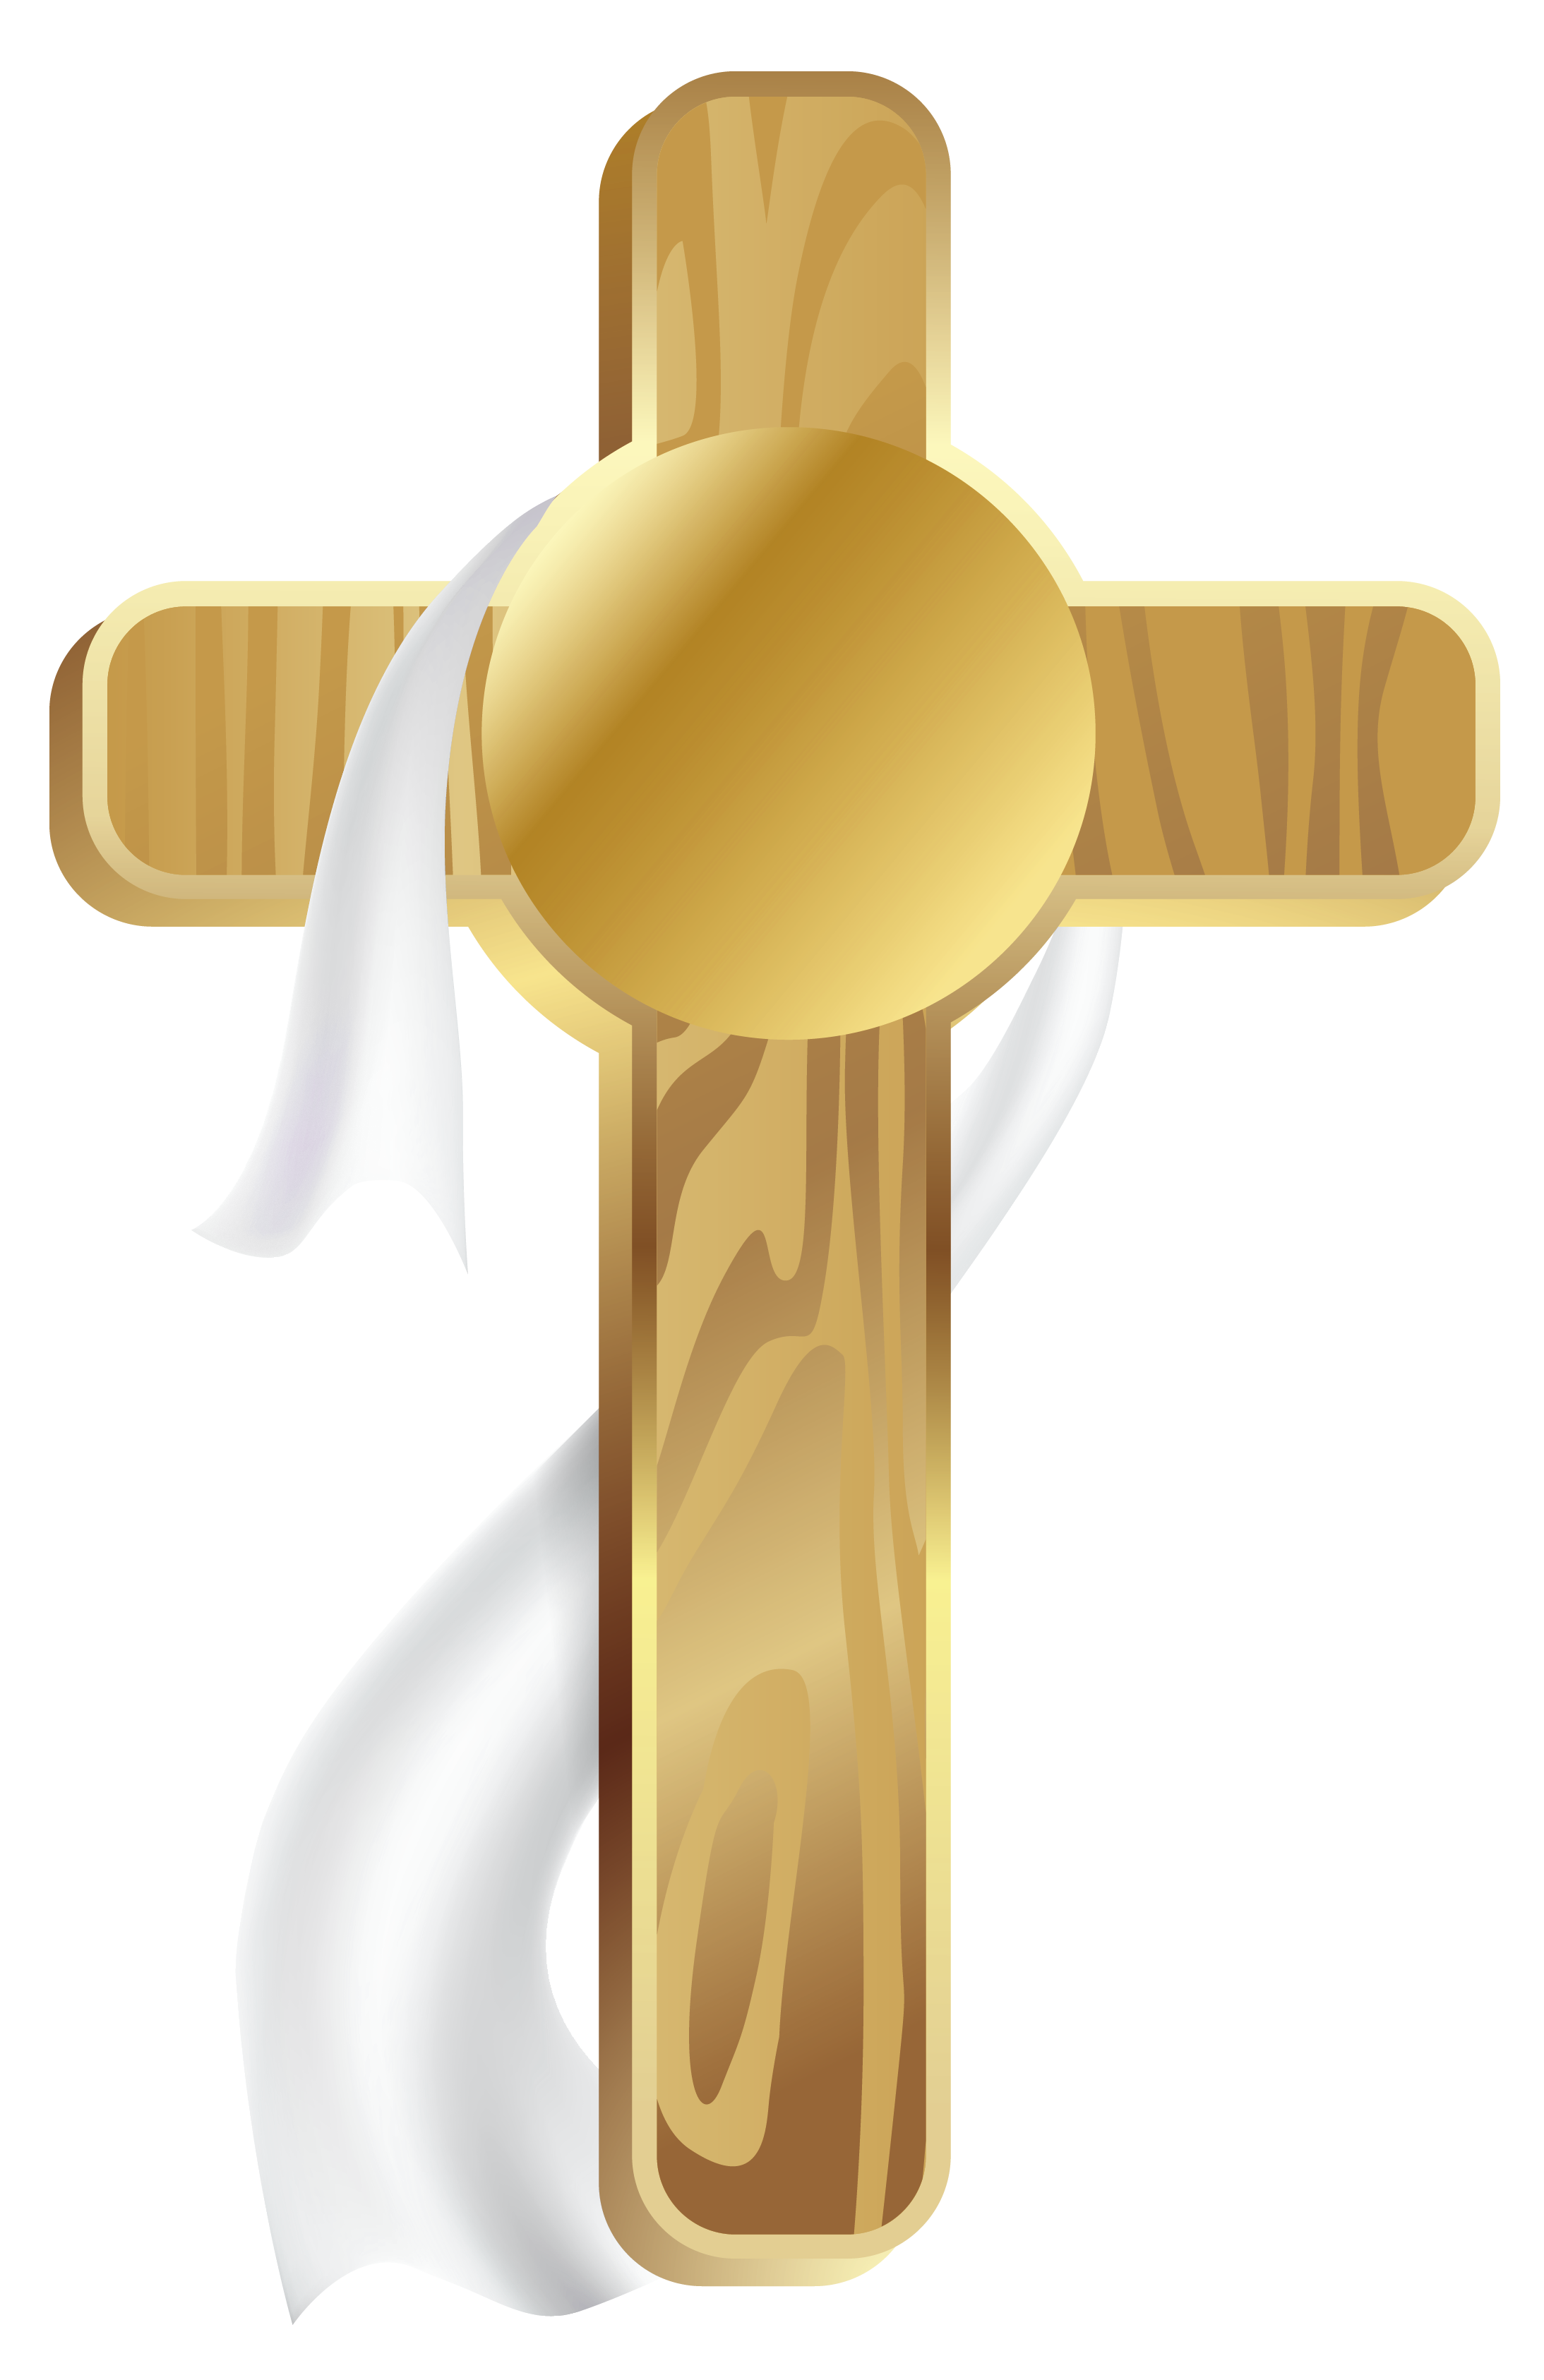 Heaven clipart died jesus. Wooden cross png picture